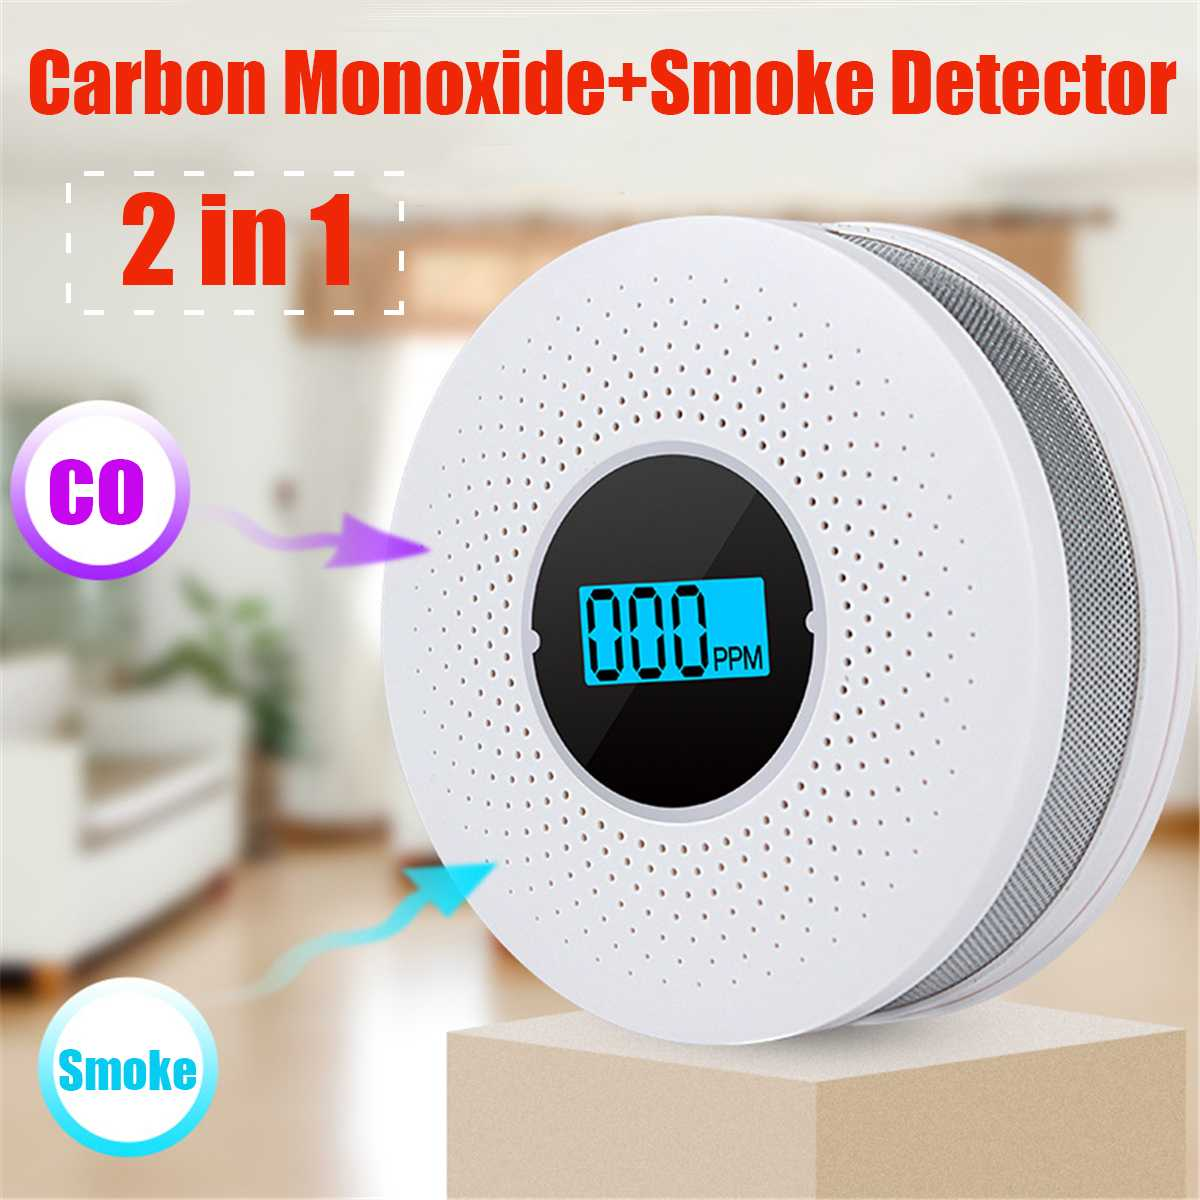 2 In 1 LCD Display Carbon Monoxide And Smoke Combo Detector Battery Operated CO Alarm With LED Light Flashing Sound Warning